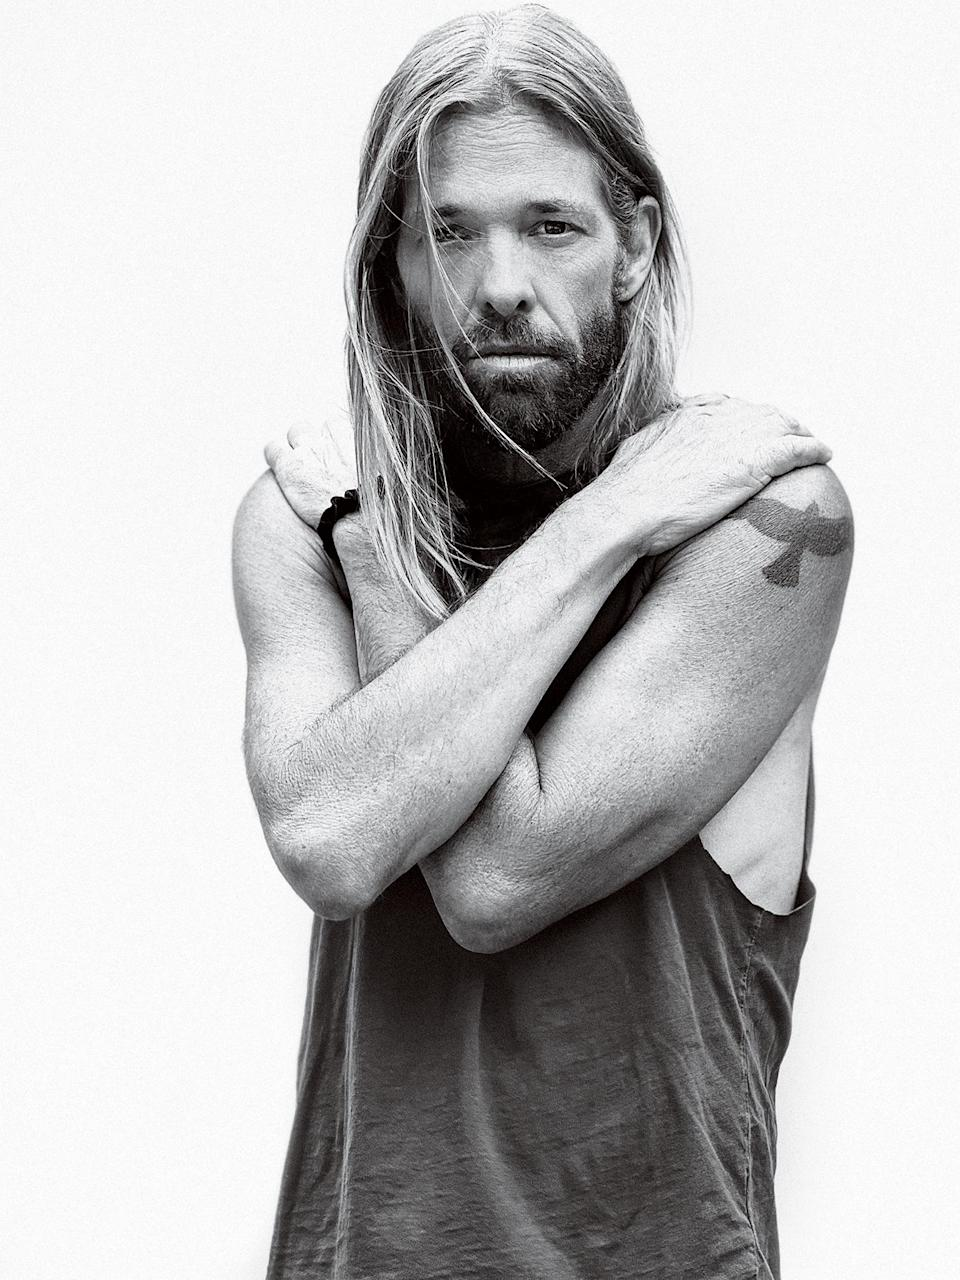 Taylor Hawkins, photographed in Los Angeles on June 10th, 2021. - Credit: Photograph by Jason Nocito for Rolling Stone